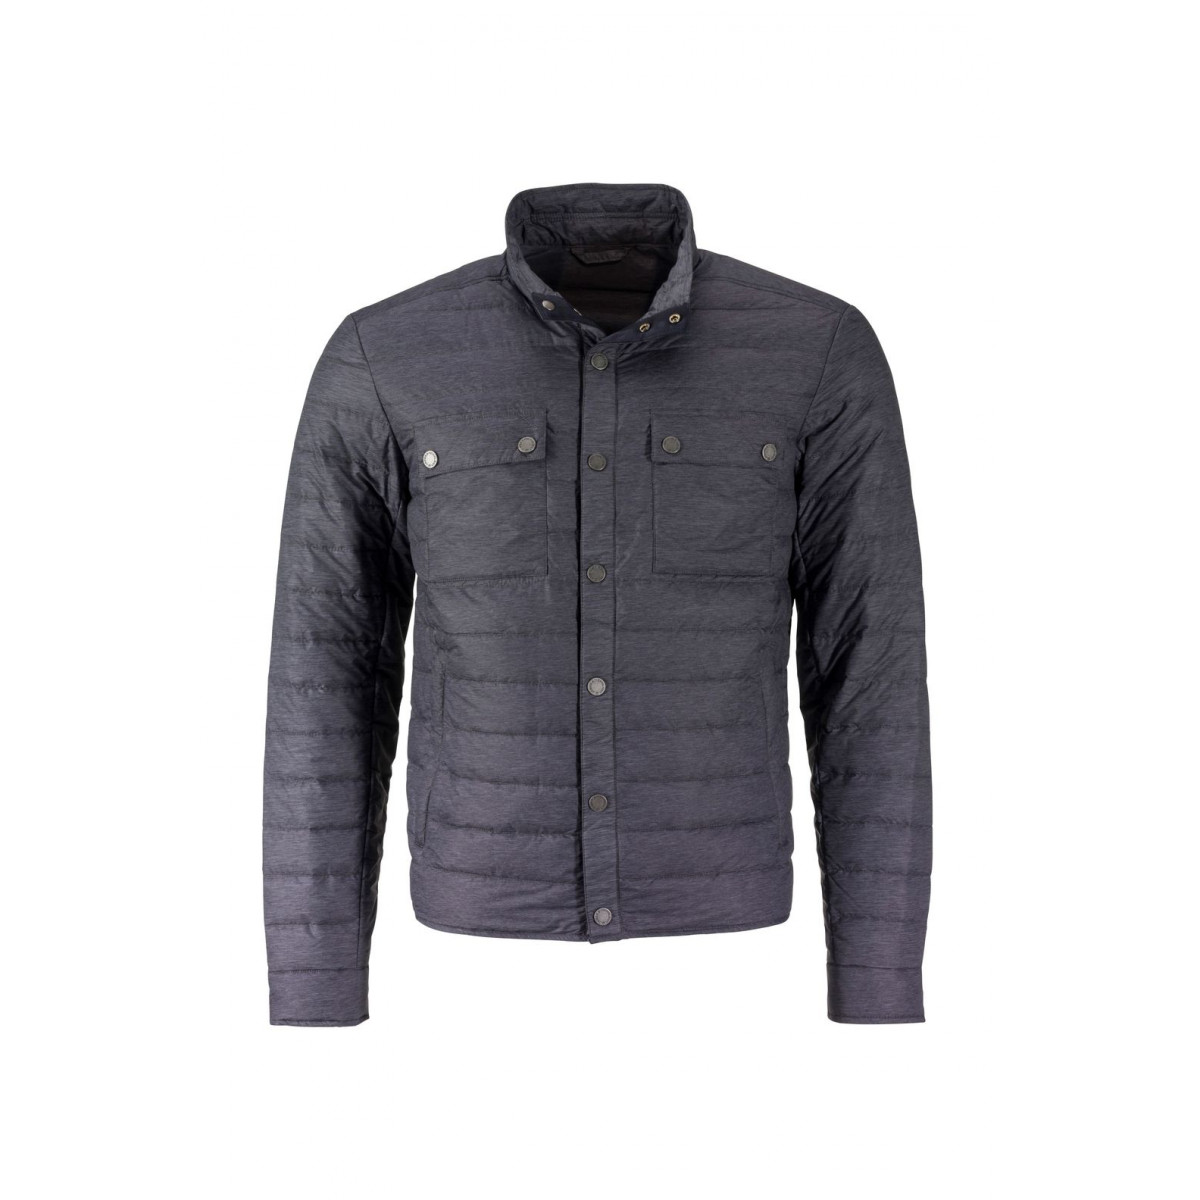 Куртка мужская JN1106 Mens Lightweight Down Jacket - Черный меланж